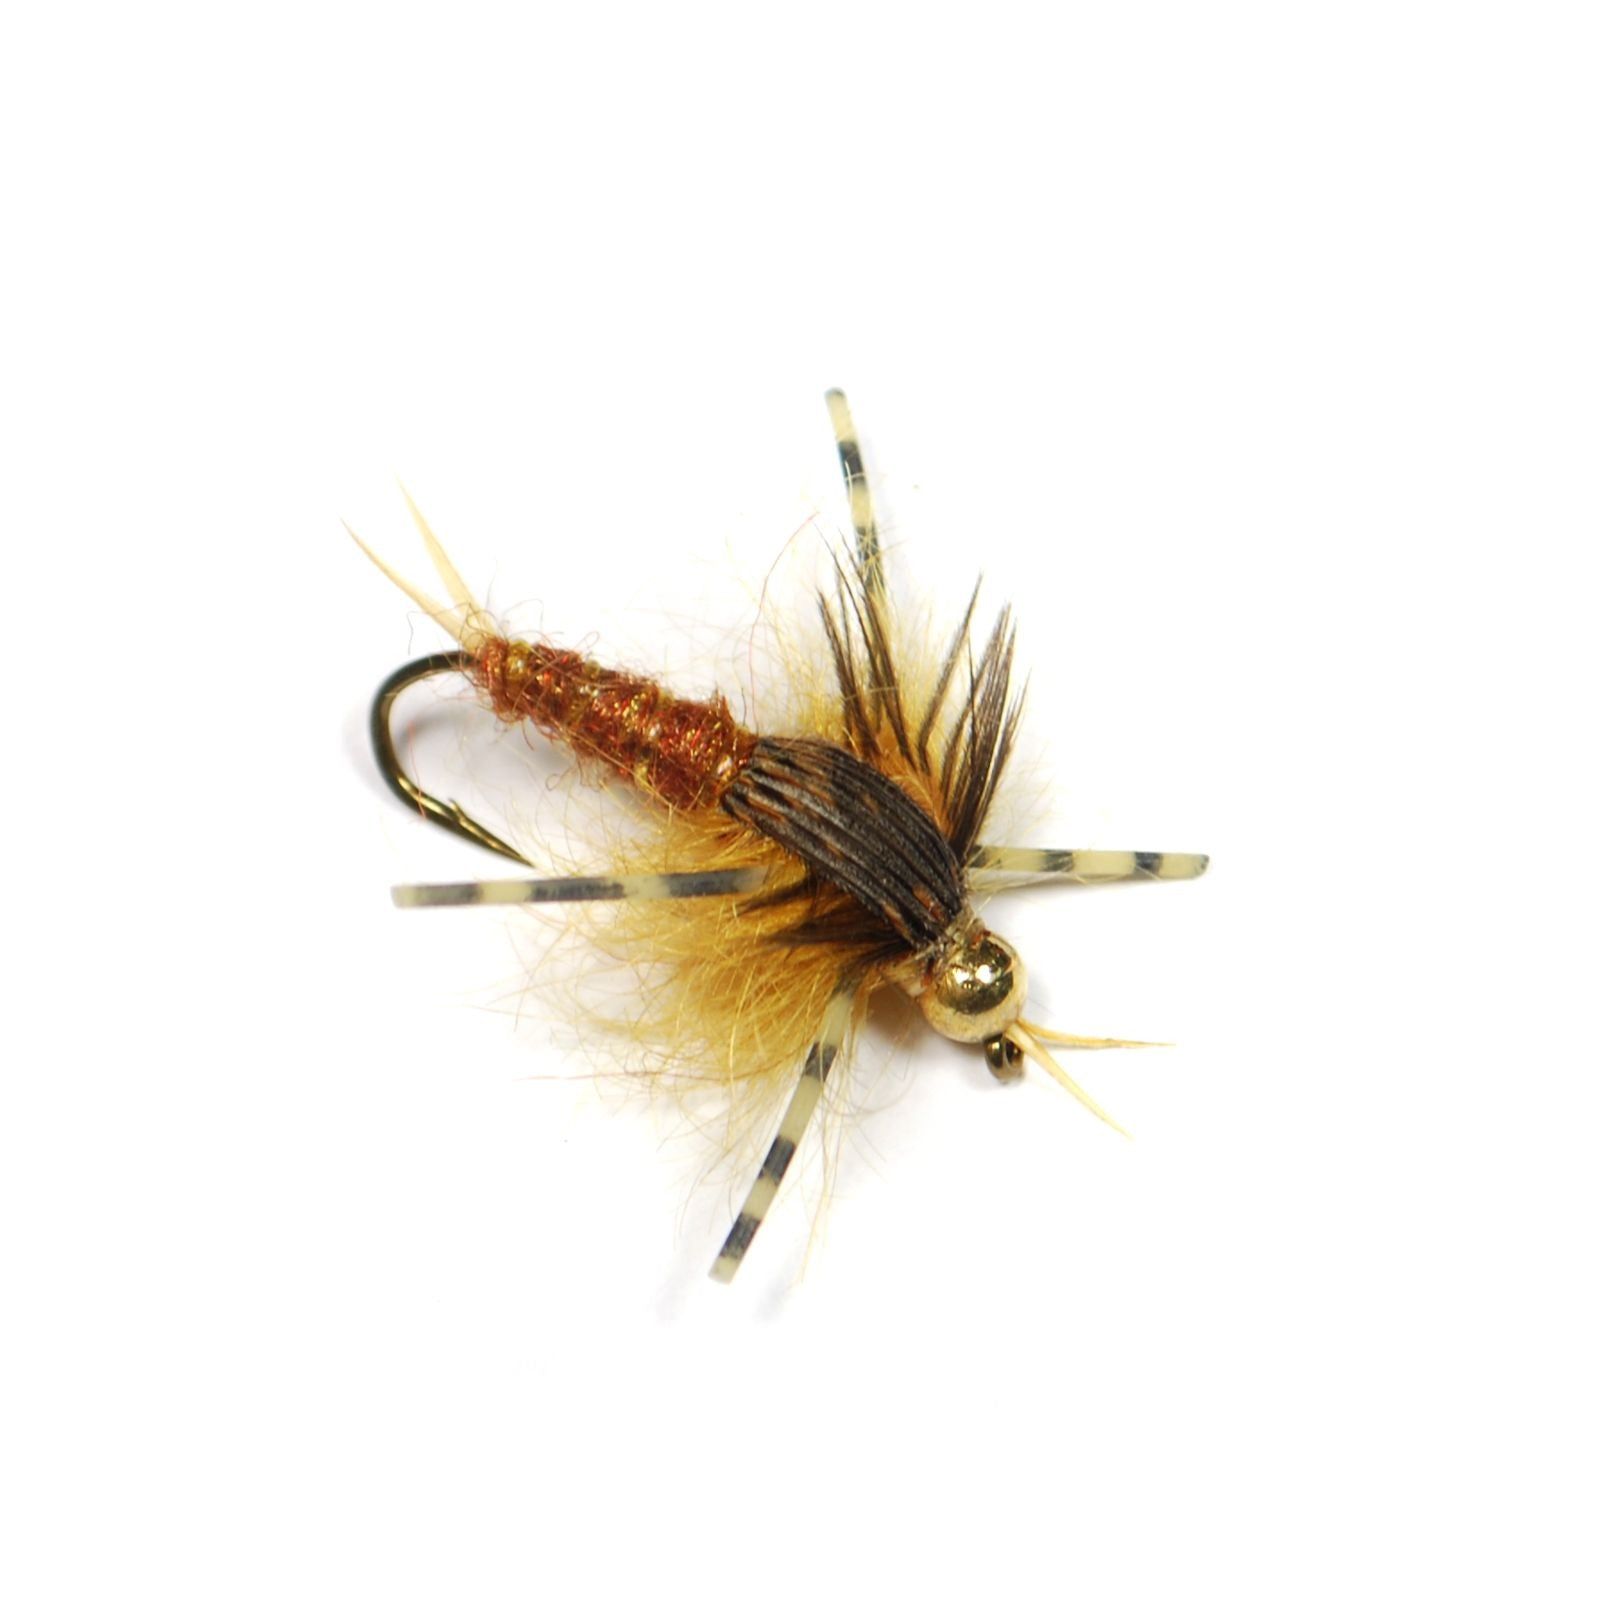 e4f65f7baf6ce https   pacificflyfishers.com  daily https   pacificflyfishers.com products  ...